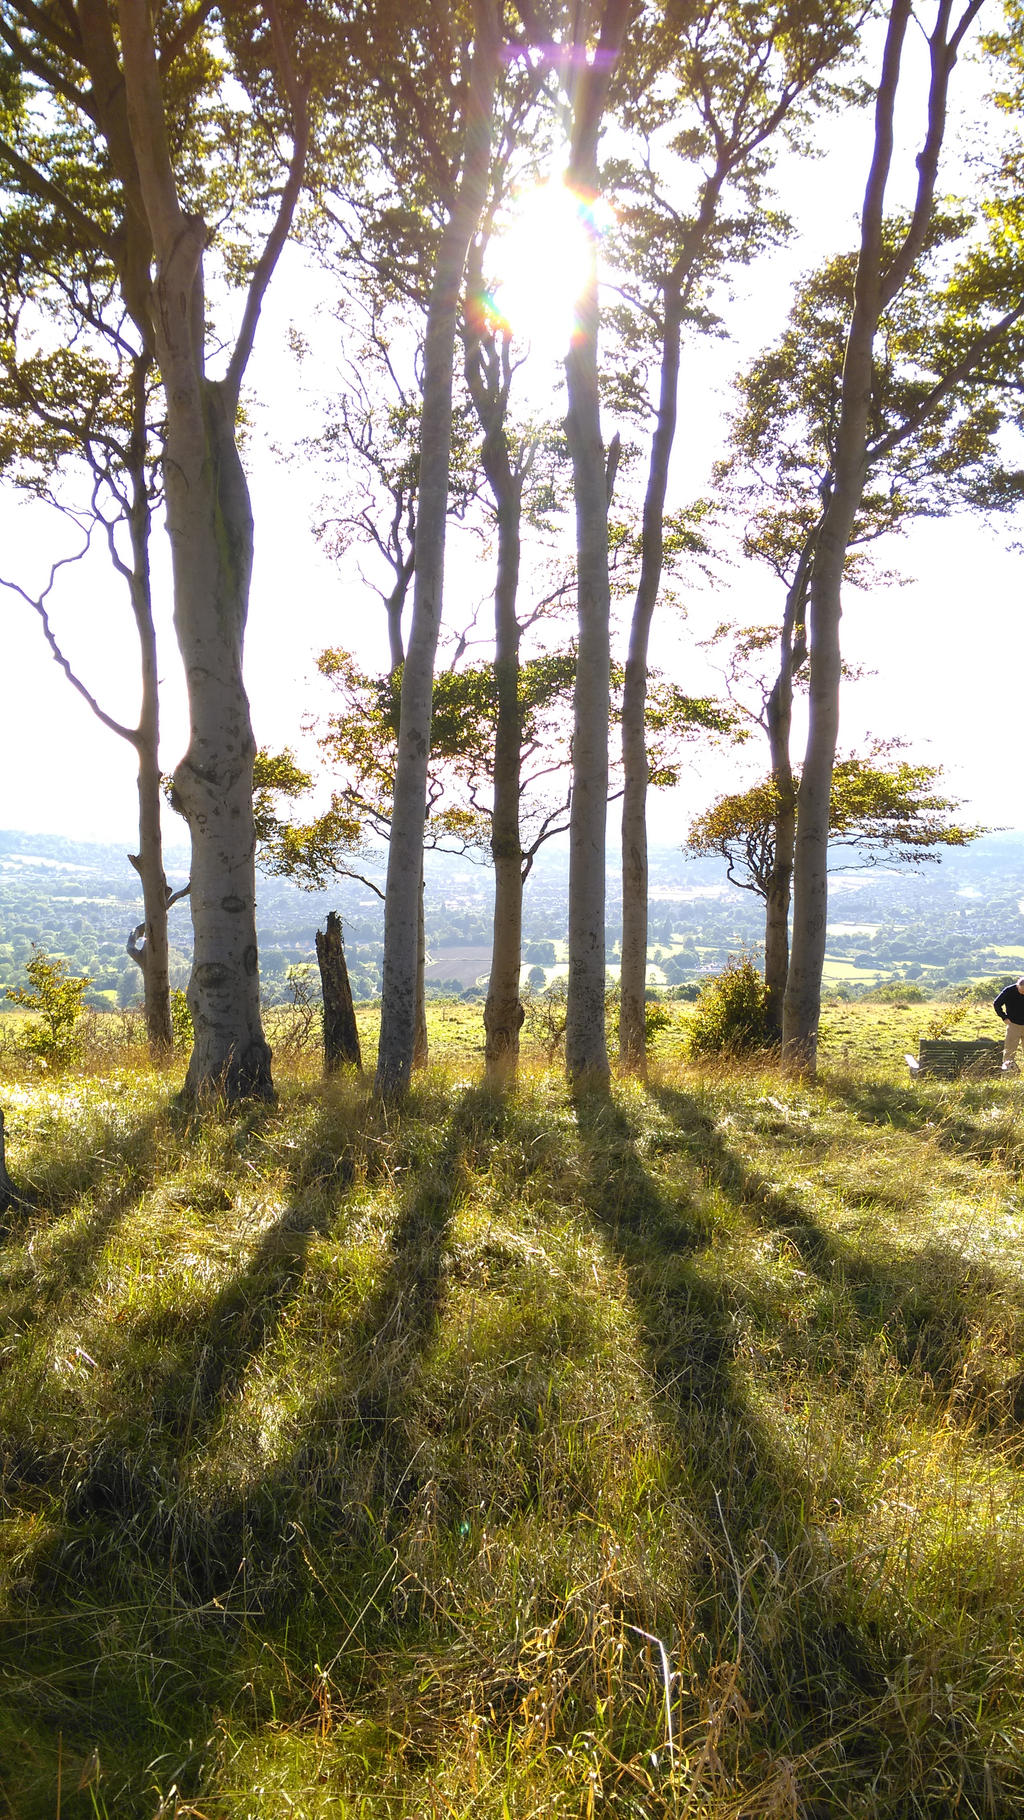 Trees and Shadows on Cleeve Hill by Miltonholmes